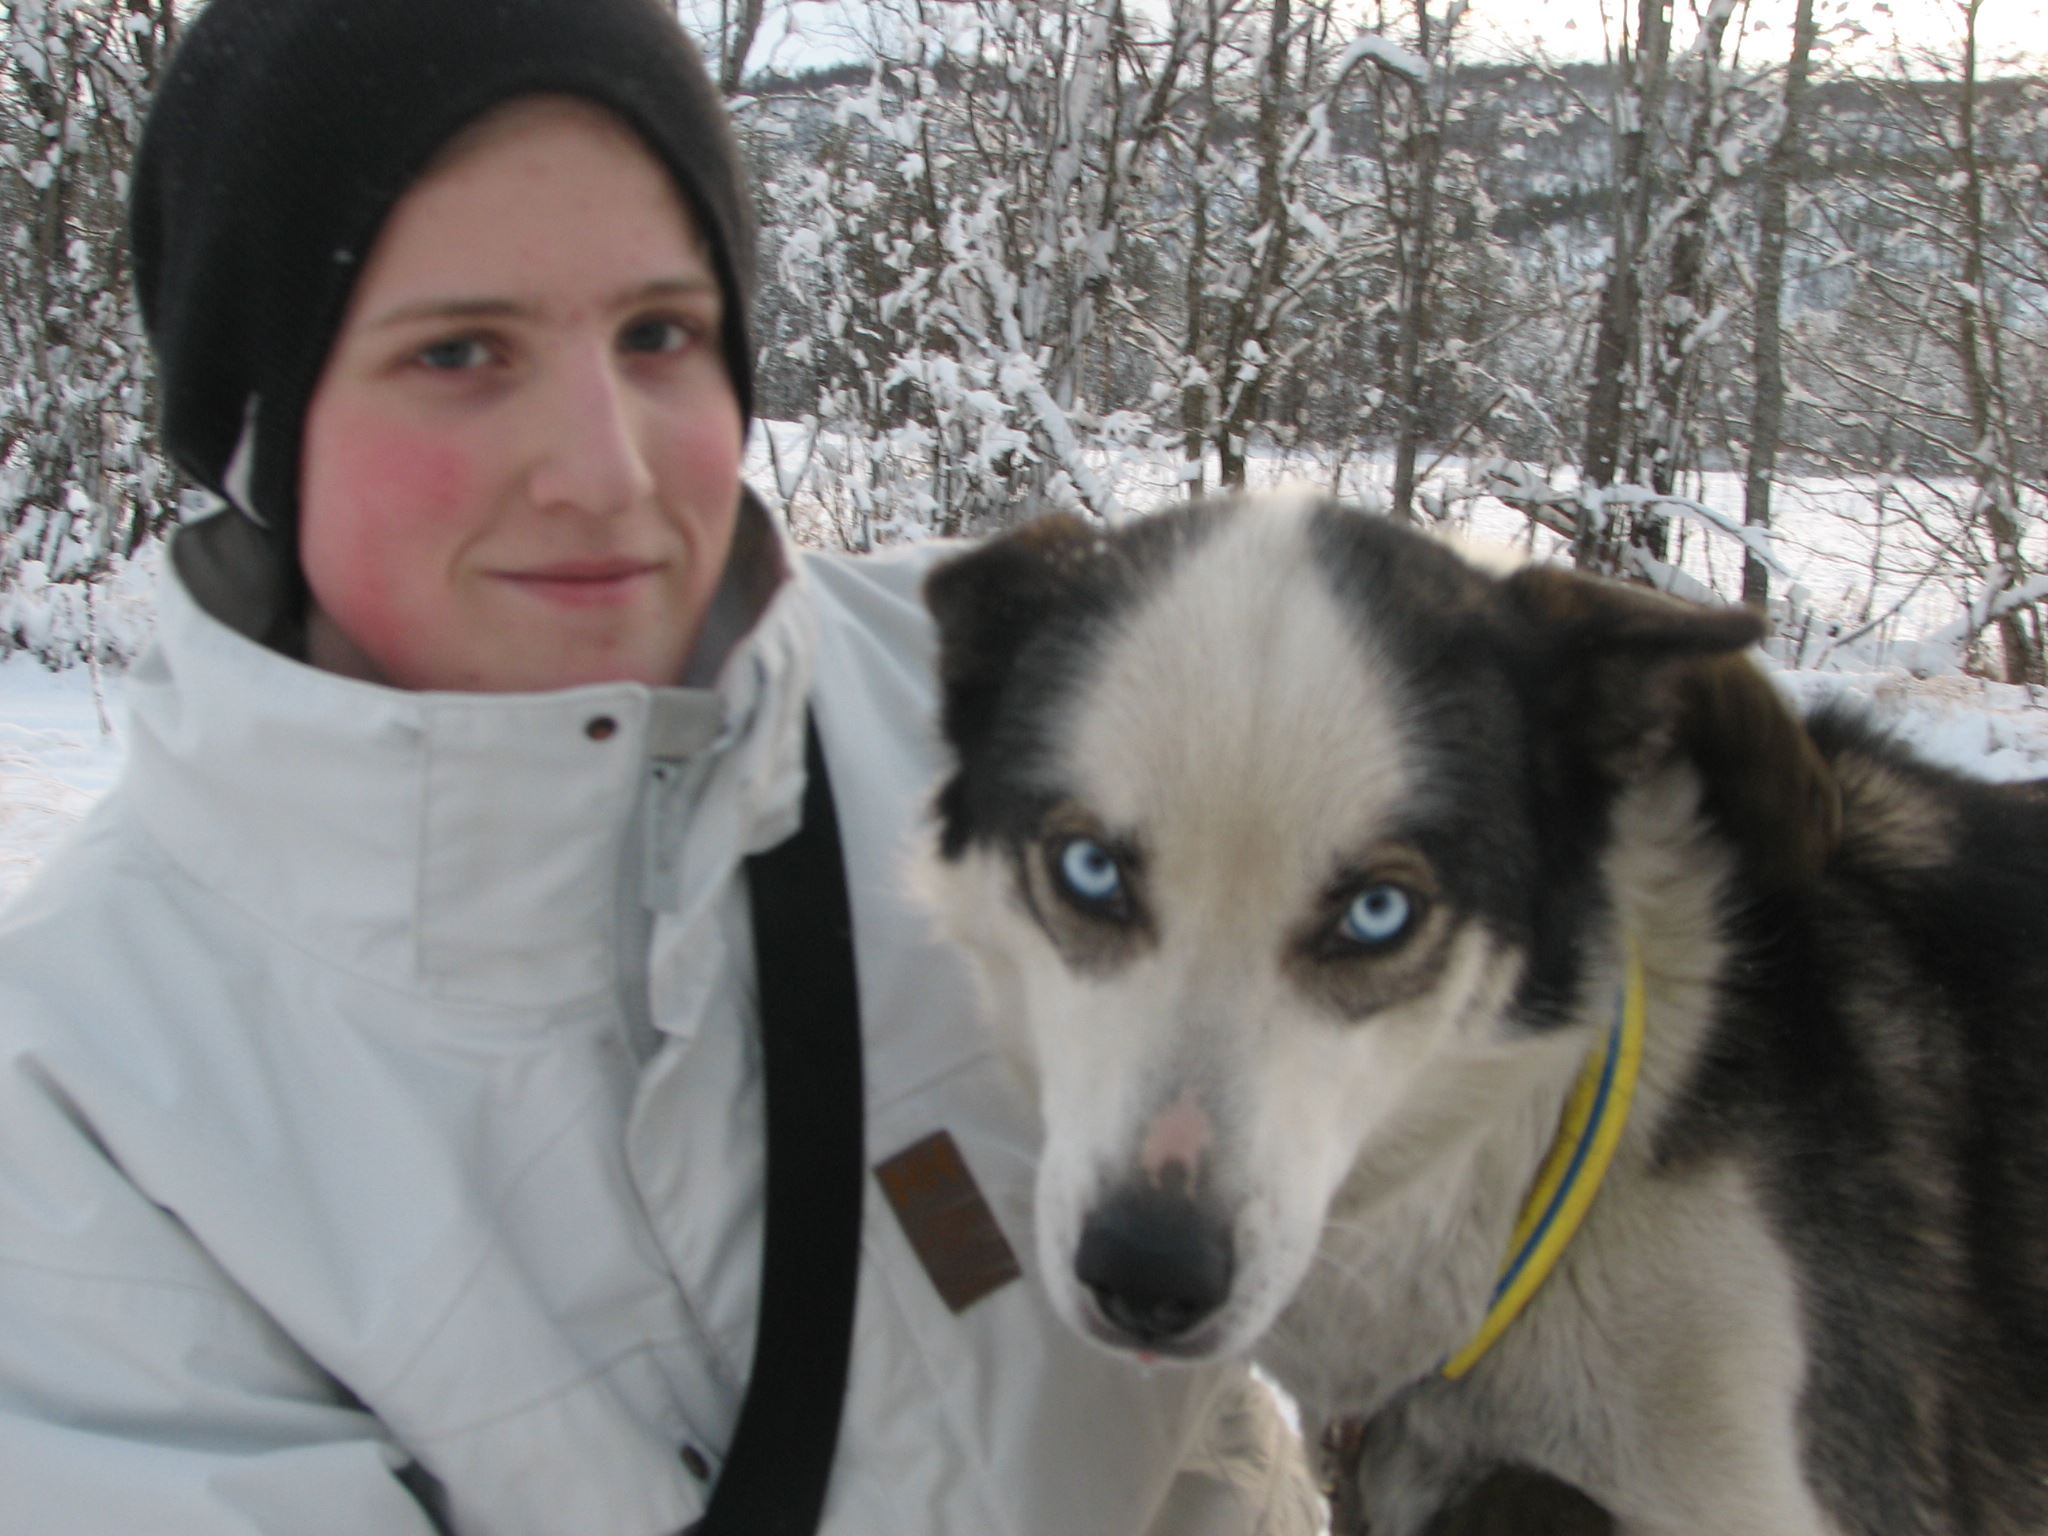 Polar Park and husky - Destination Snowman